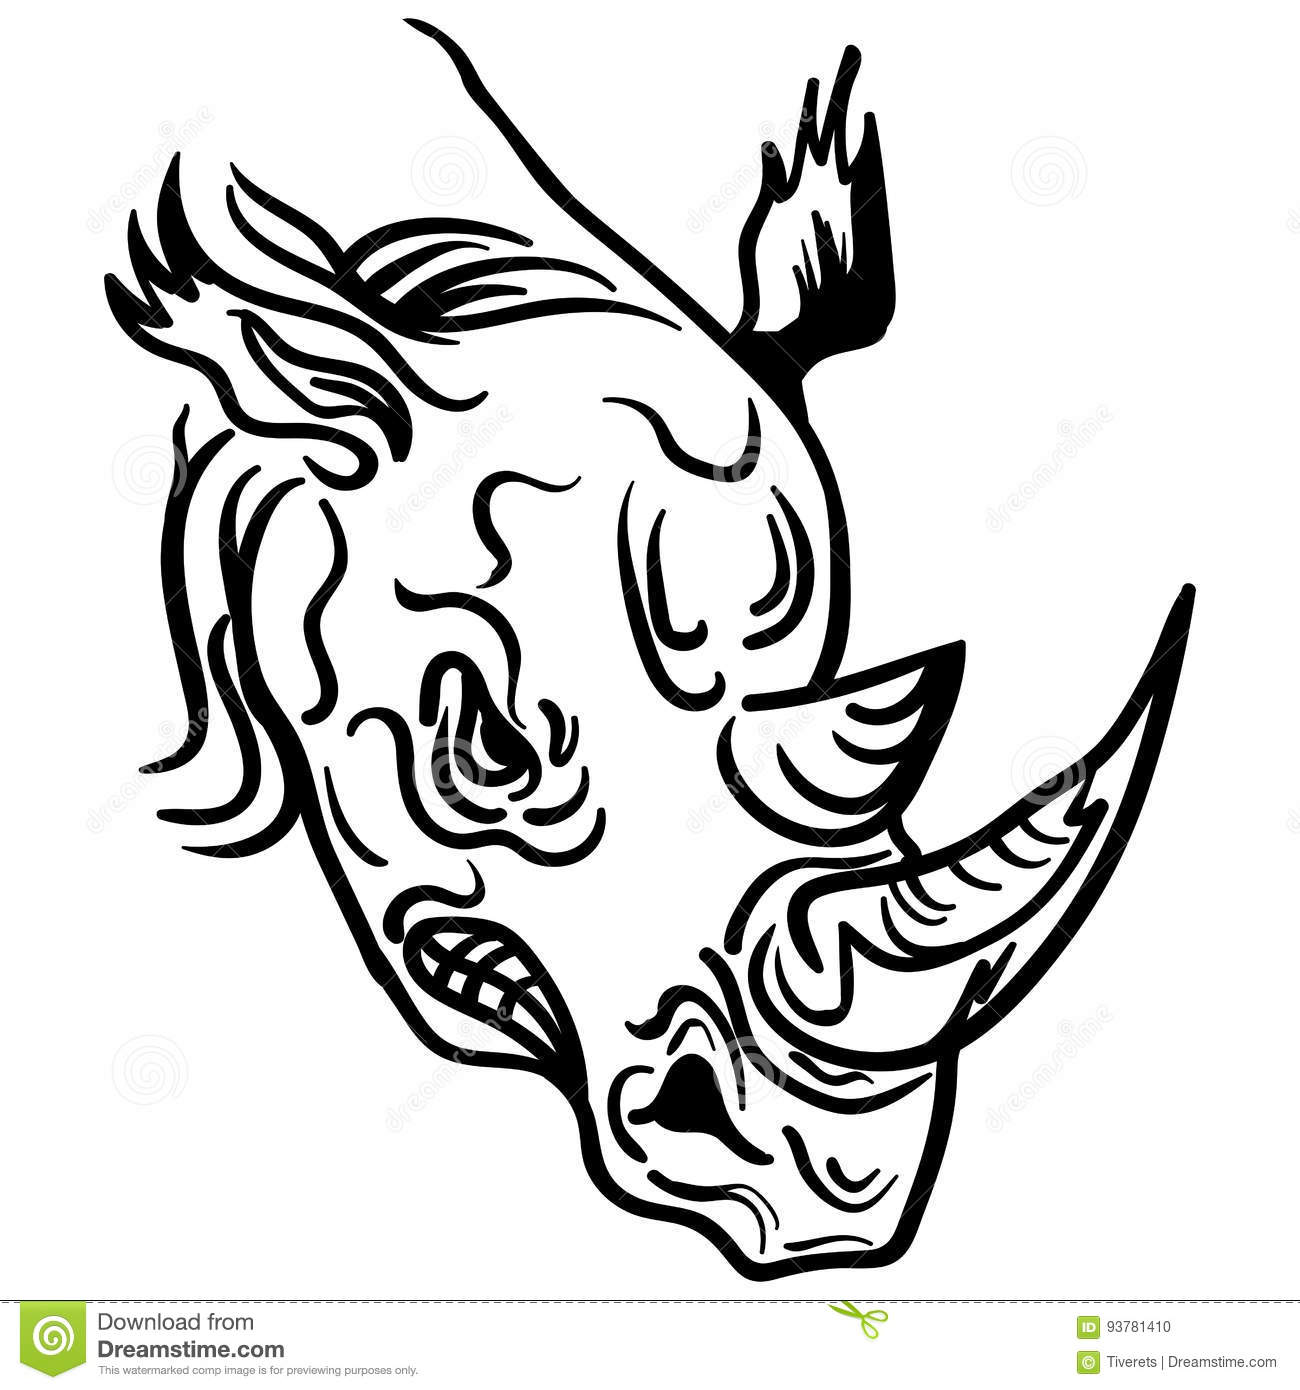 Linear paint draw rhino head vector illustration stock vector royalty free vector download linear paint draw rhino head ccuart Gallery